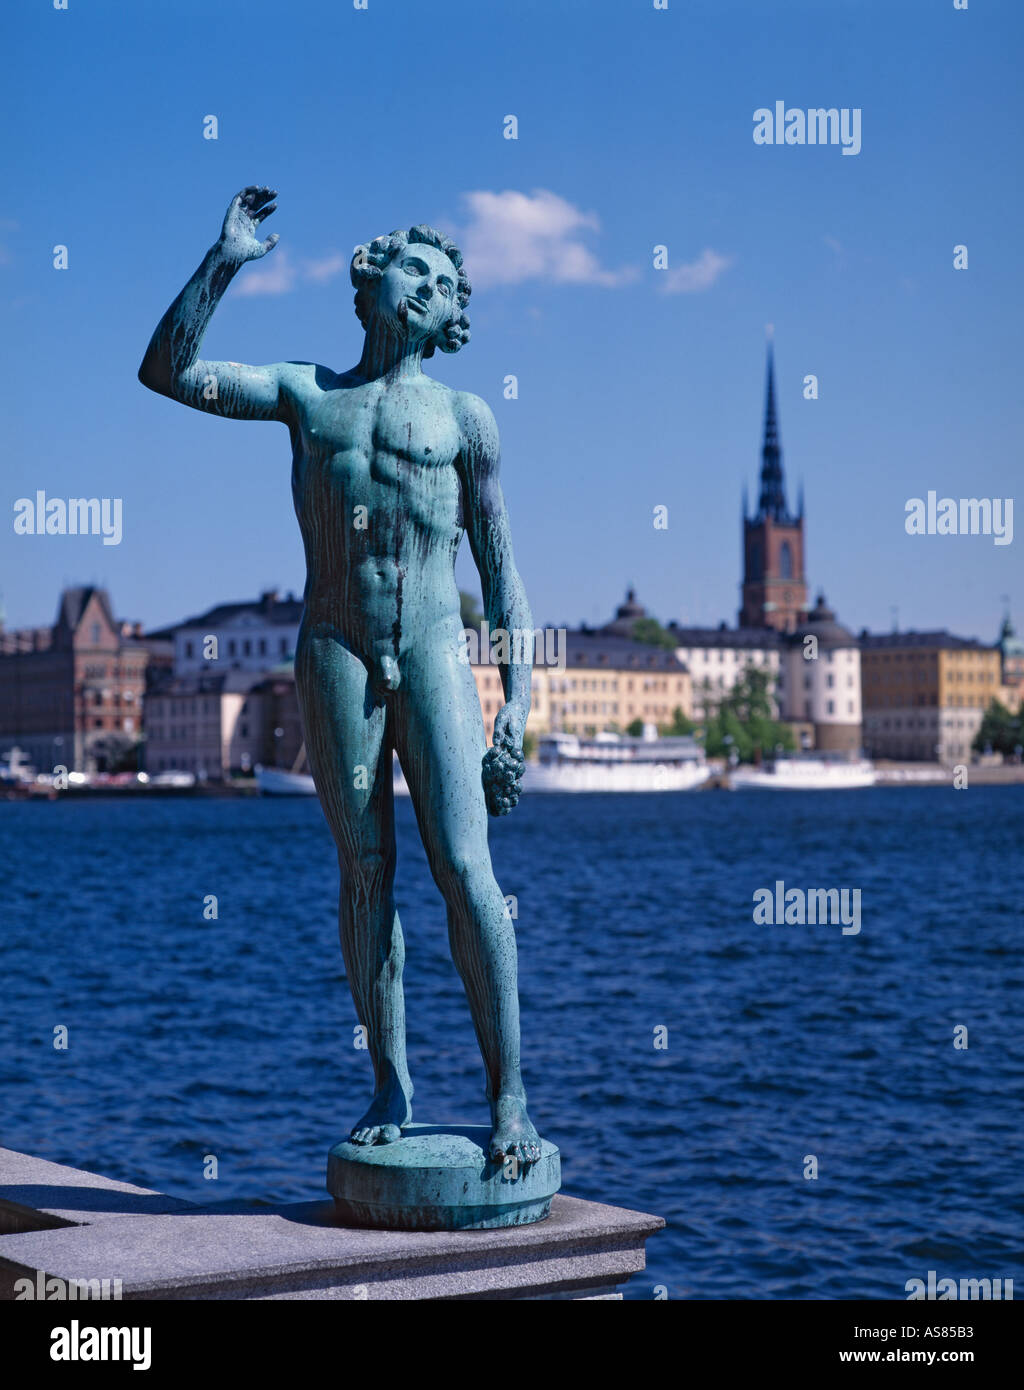 Statue at City Hall Stockholm Sweden - Stock Image